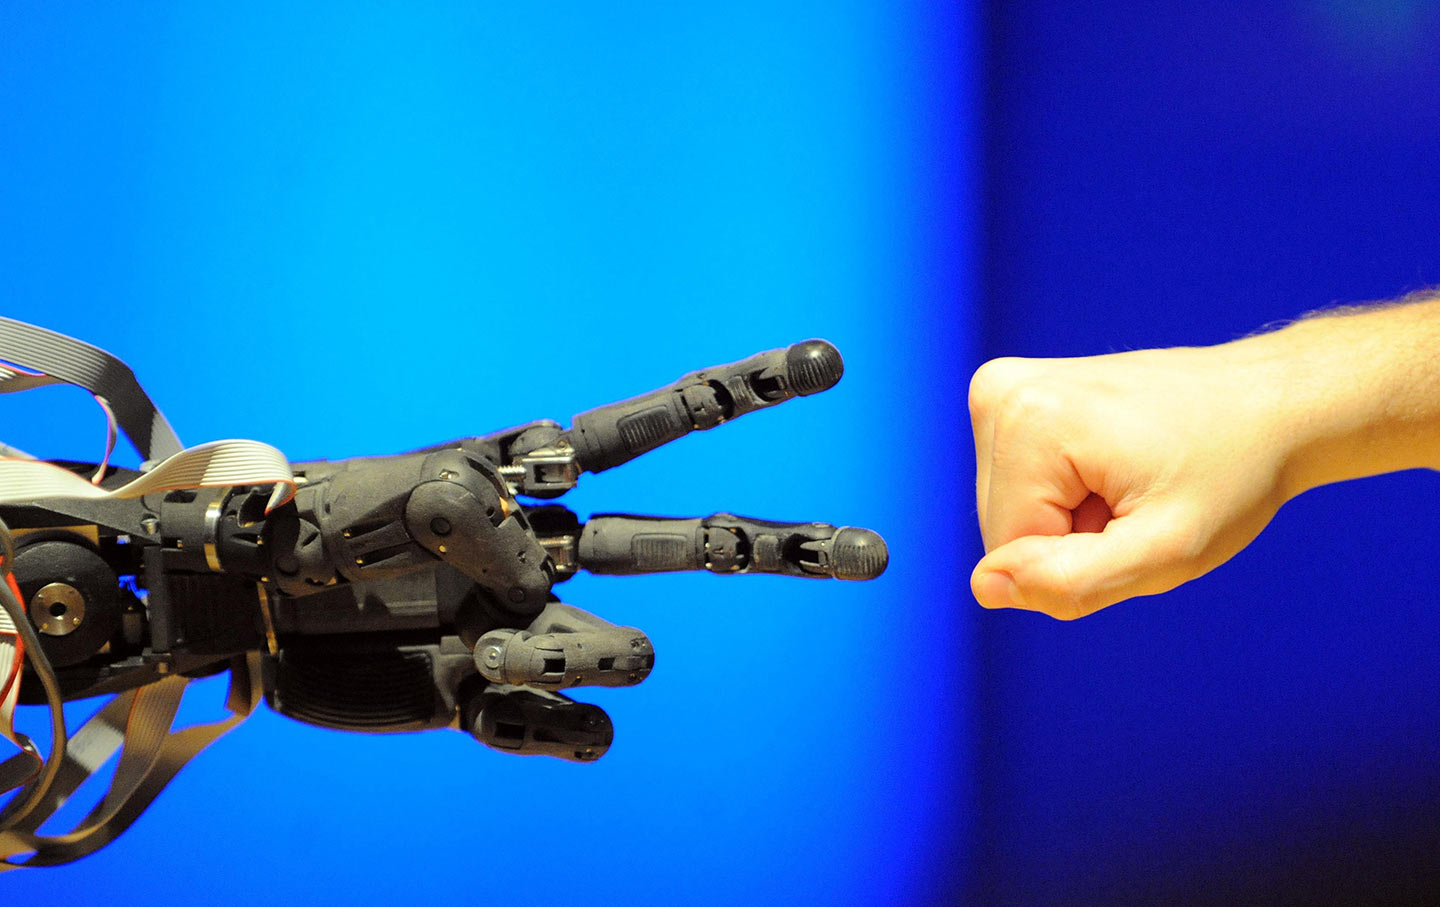 Artificial Intelligence: Is The Threat Real?